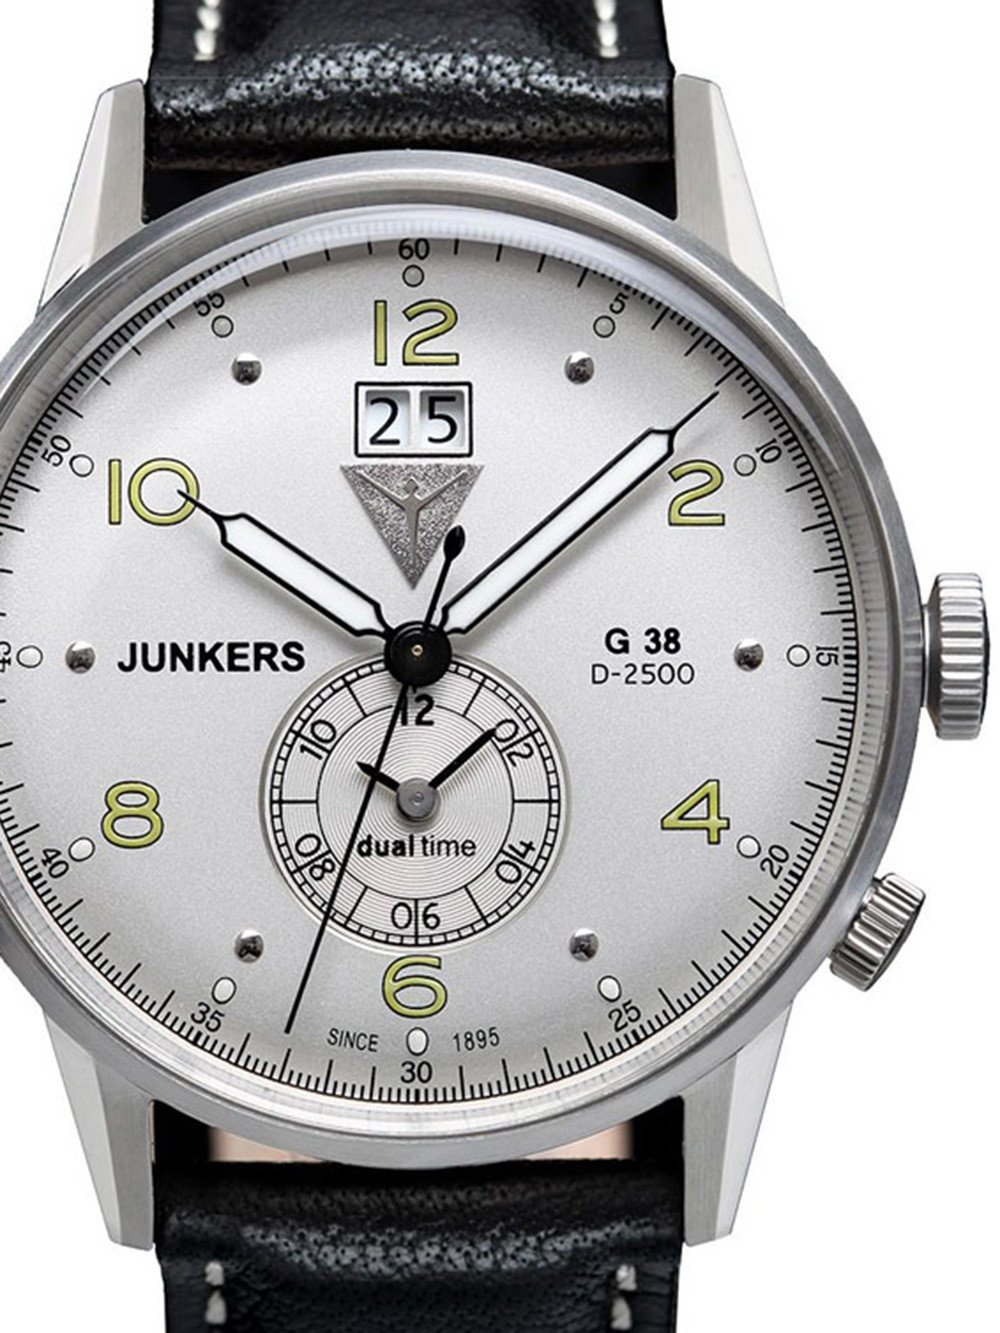 Junkers 6940-4 G38 Dual-Time Men's 10 ATM 42 mm